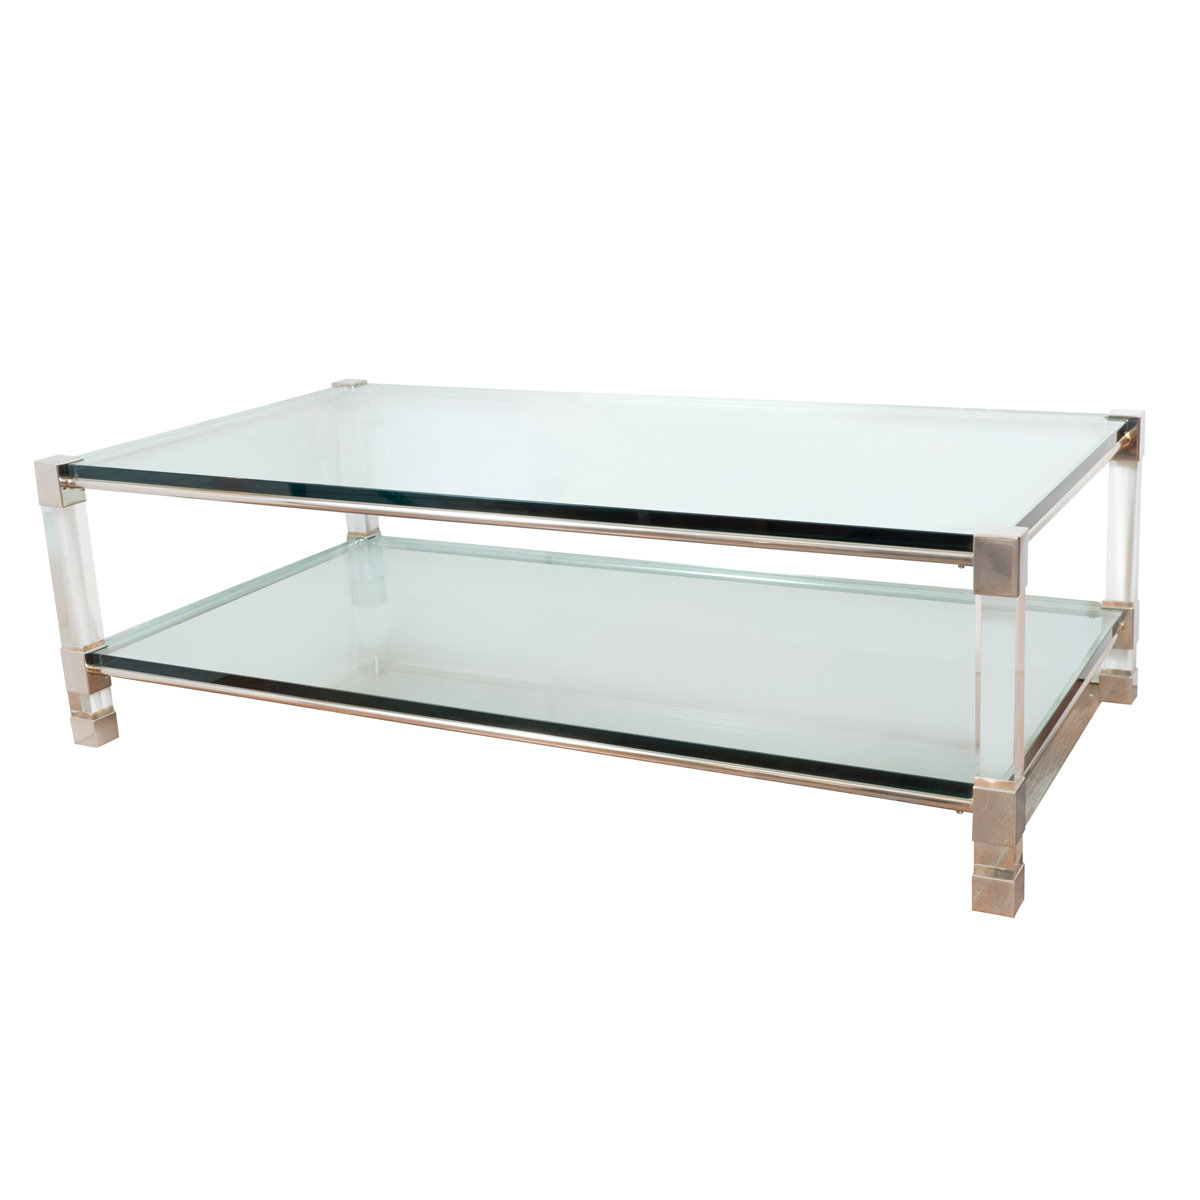 Two Tier Chrome And Lucite Coffee Table Coffee Tables